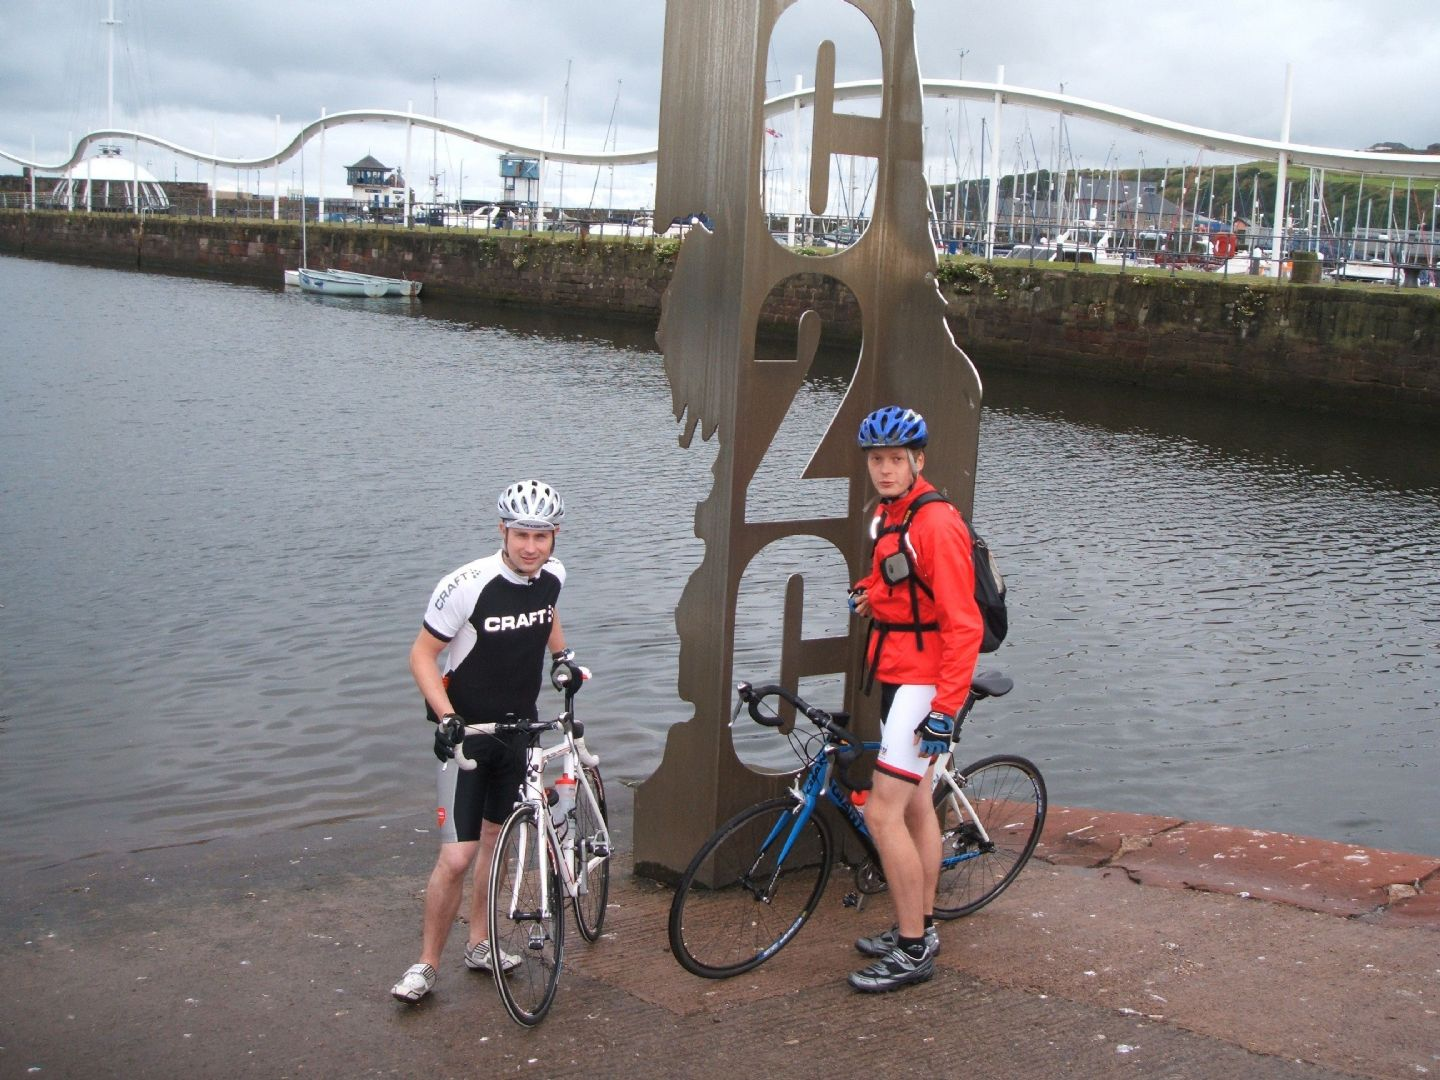 DSCF1158.JPG - UK - C2C - Coast to Coast 2 Days Cycling - Self-Guided Road Cycling Holiday - Road Cycling